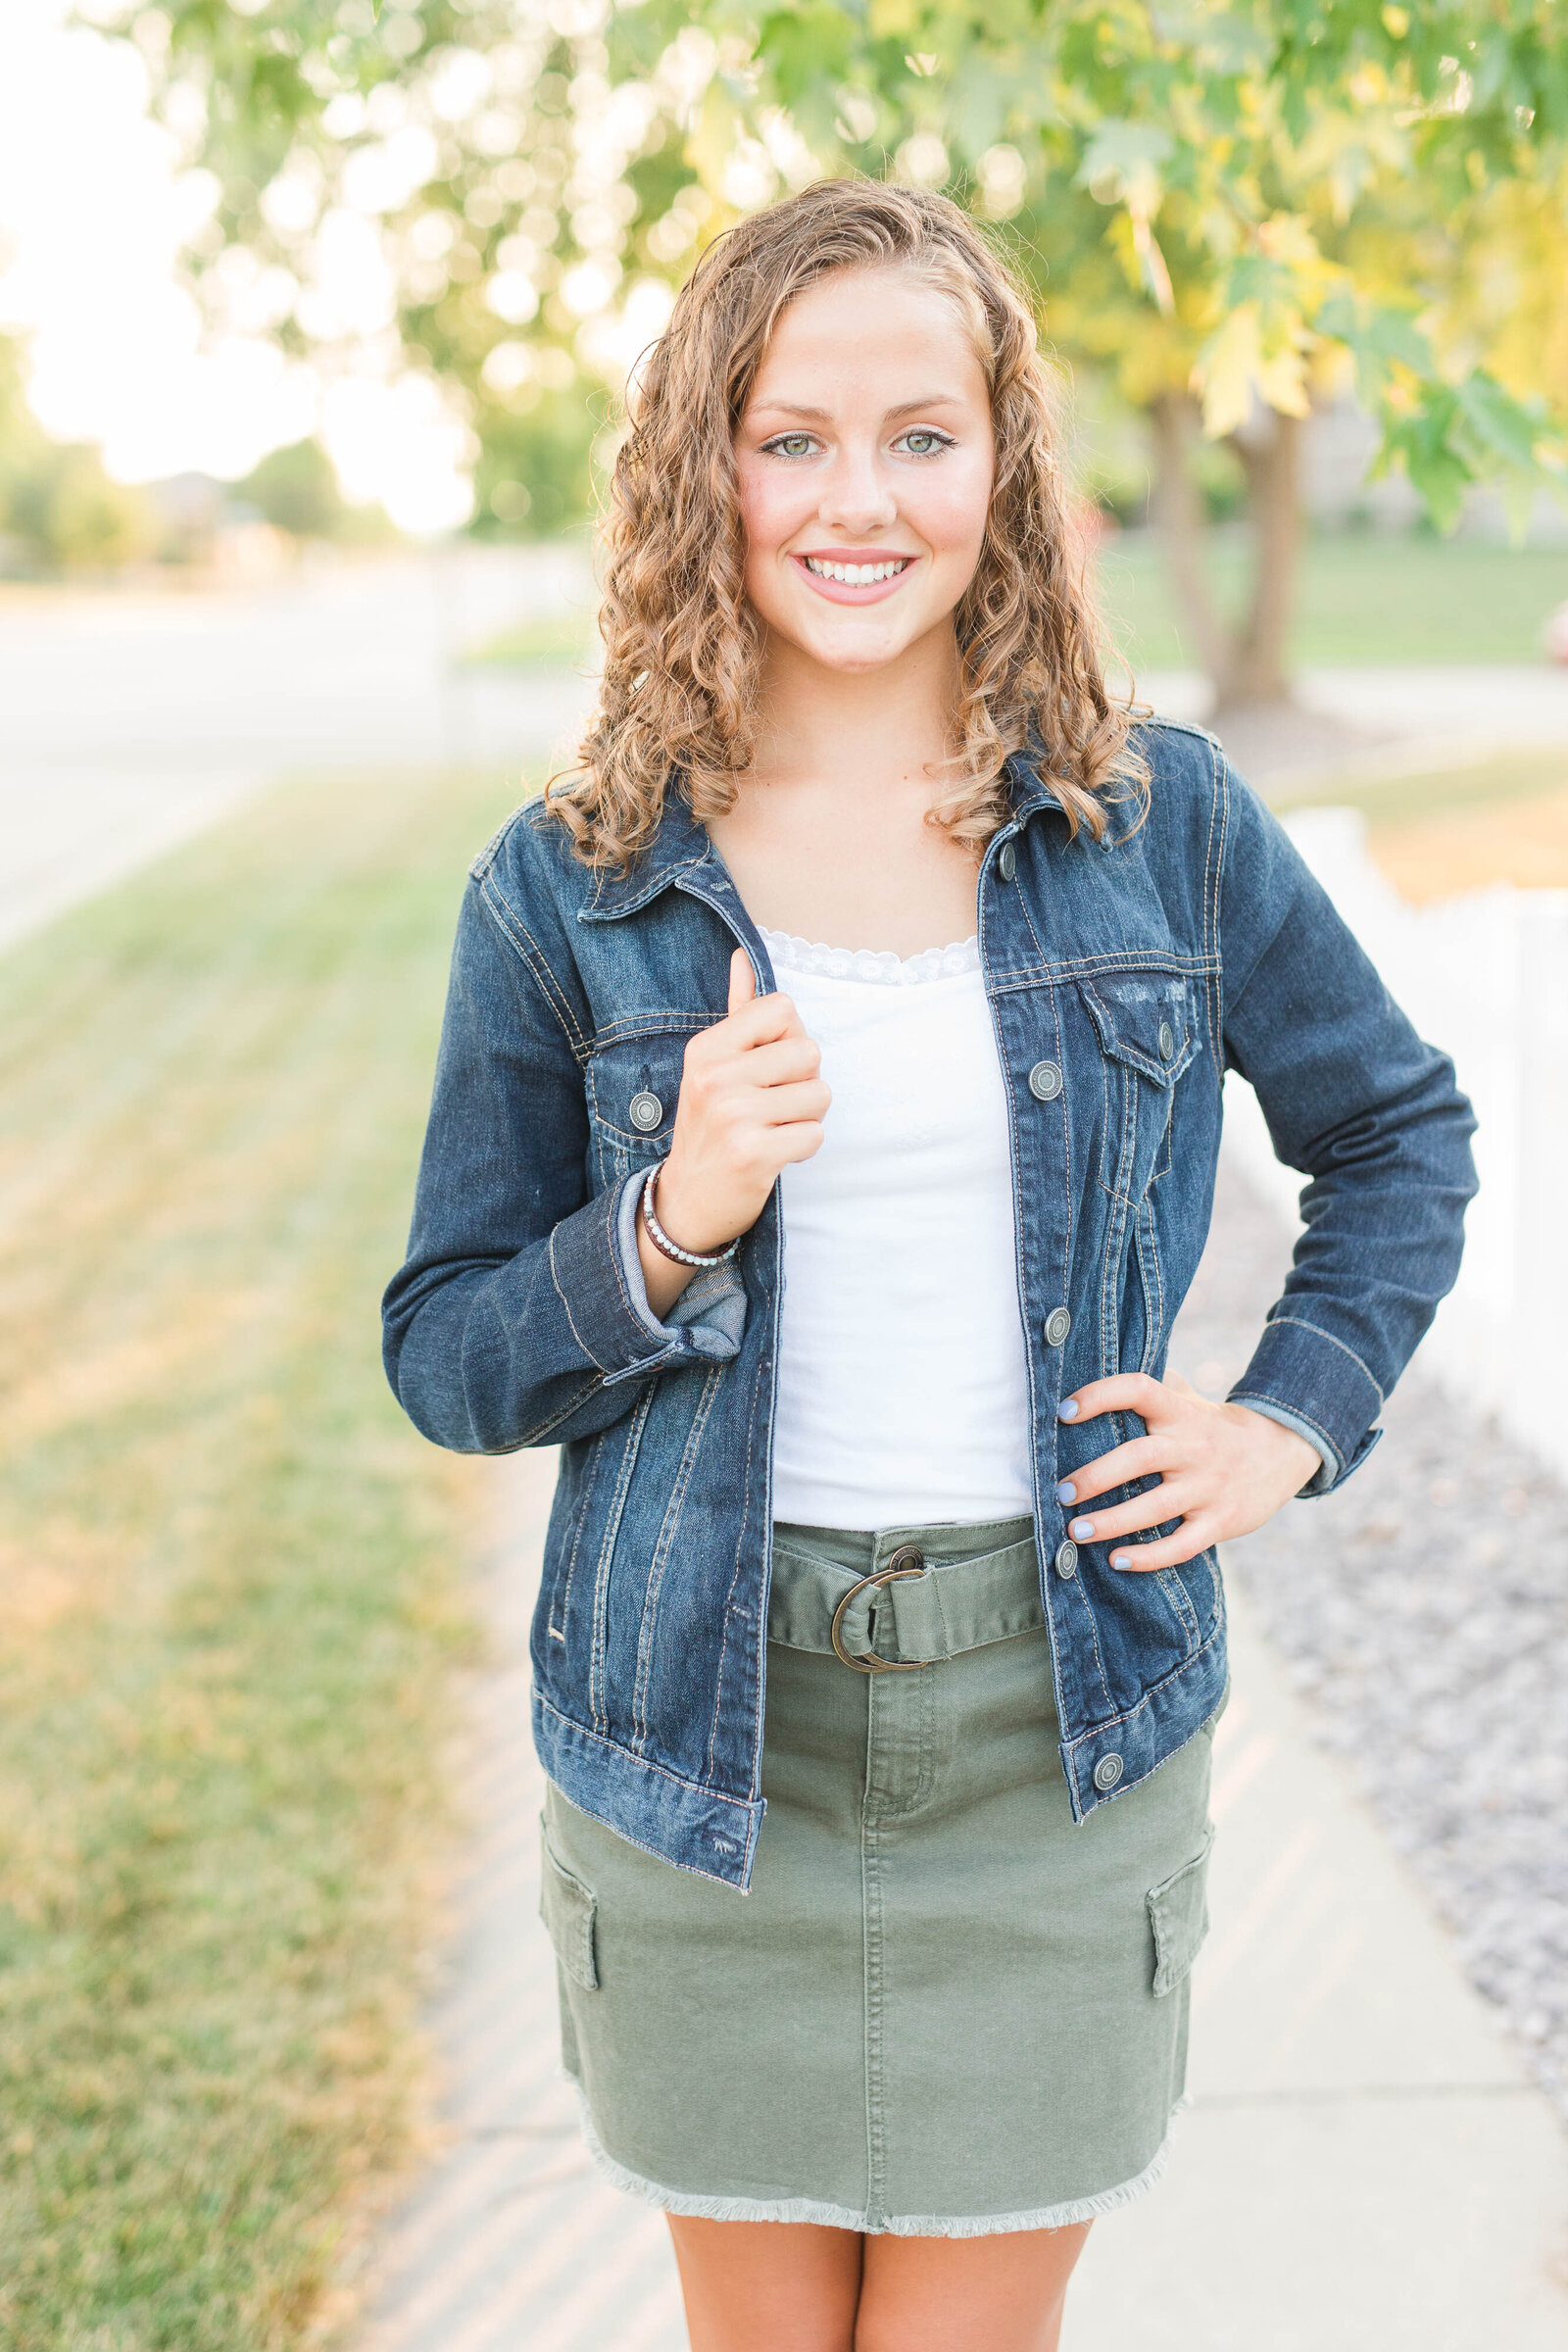 cassie-radl-senior-portraits-katie-schubert-wisconsin-wedding-photographer-42